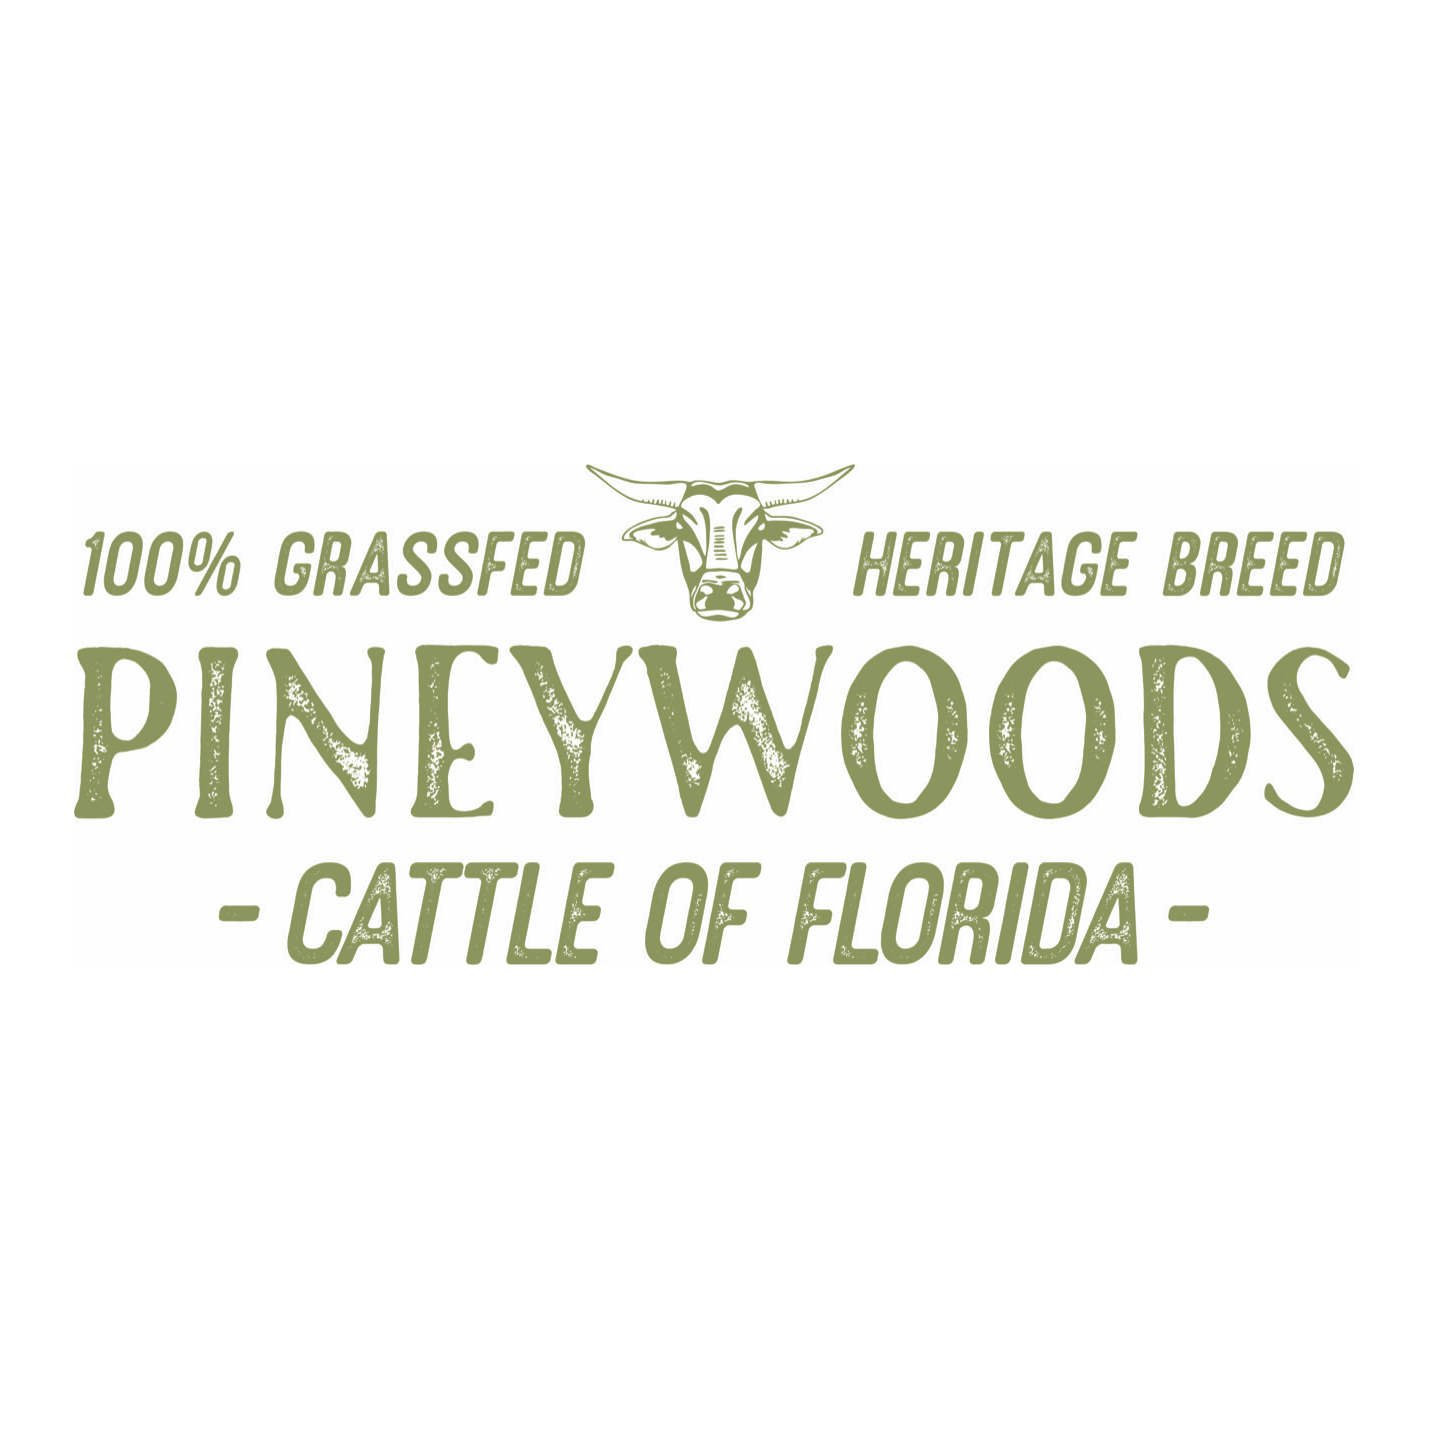 Pineywoods Cattle of Florida